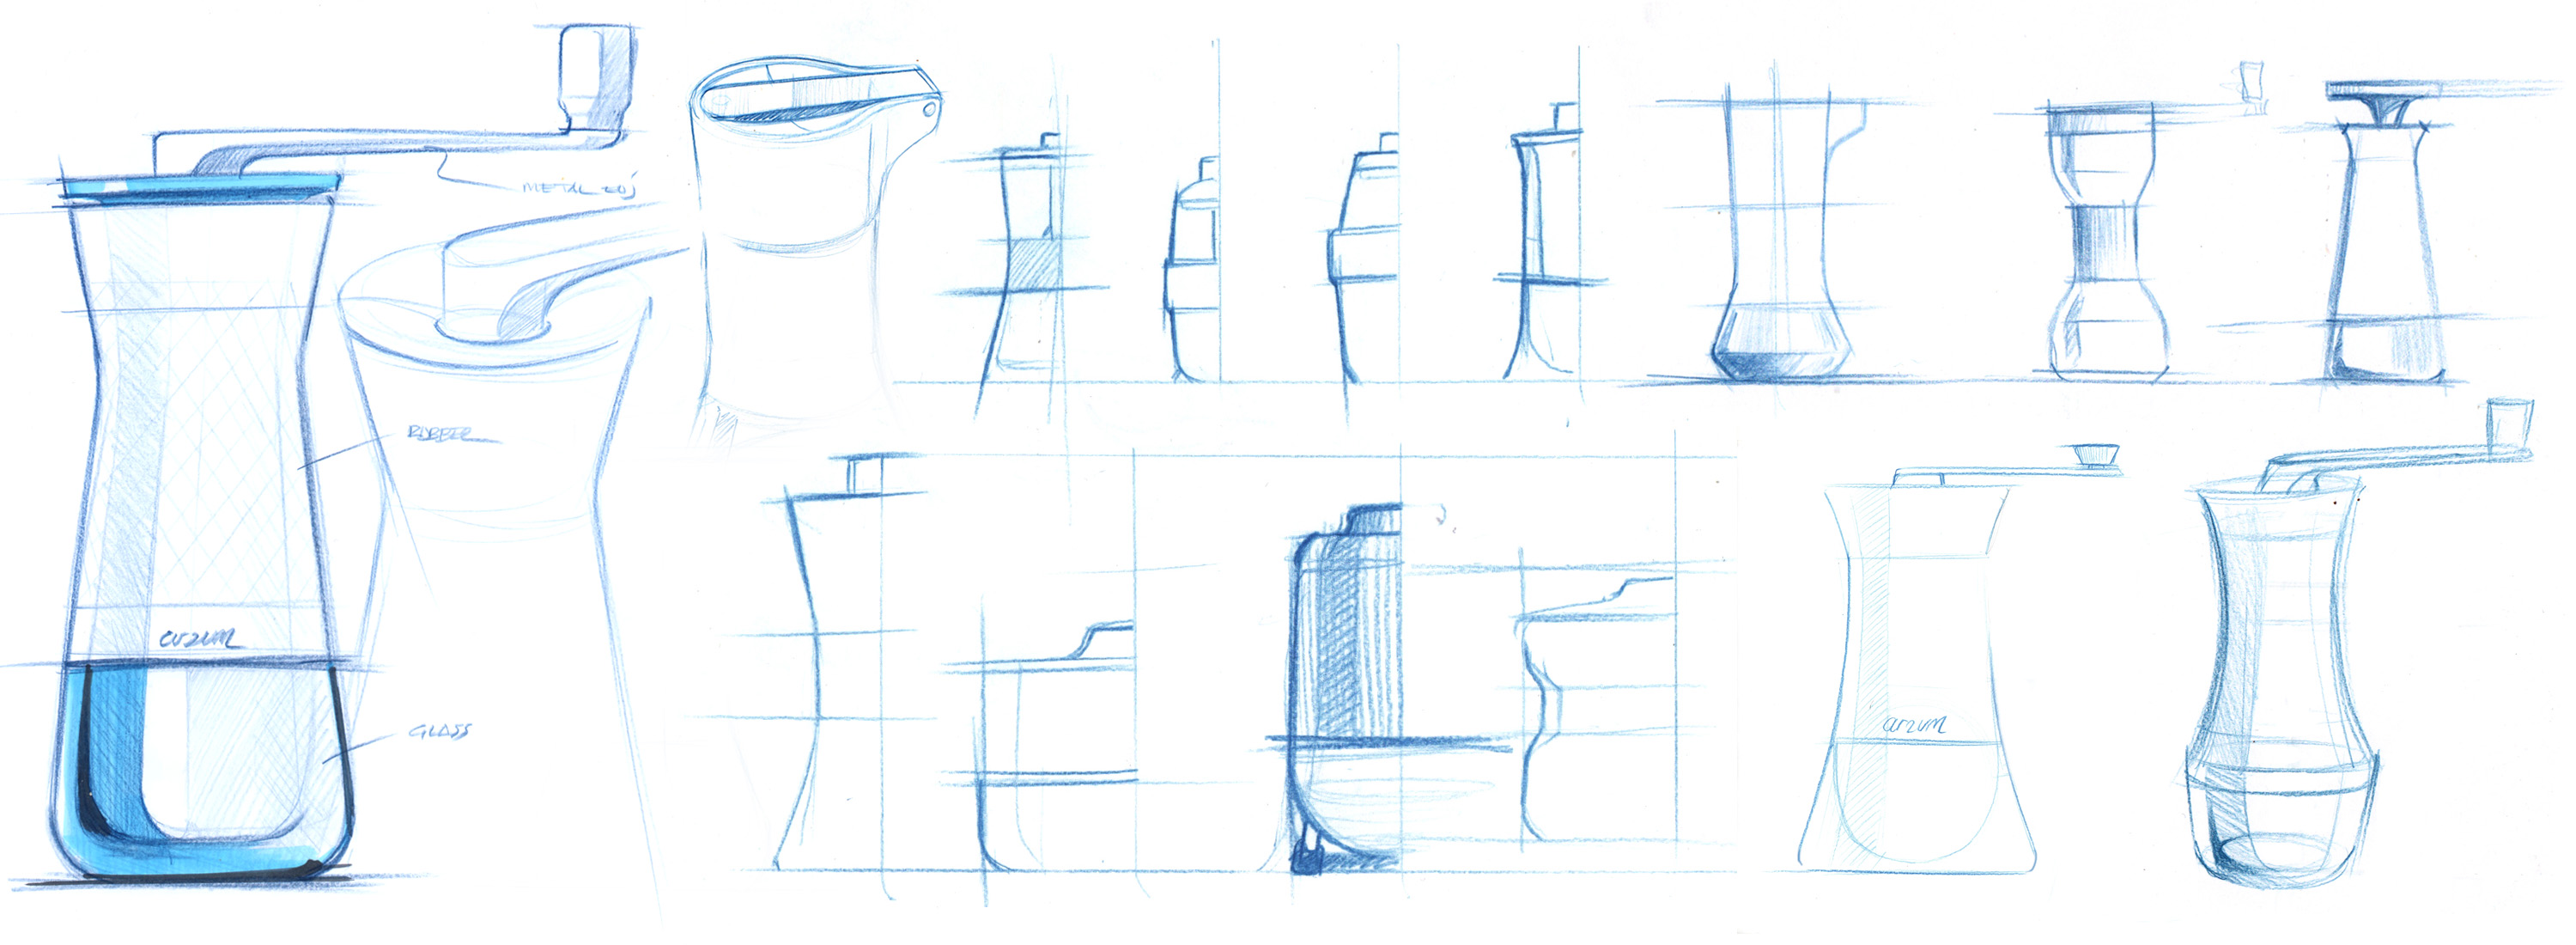 coffee grinder design sketches